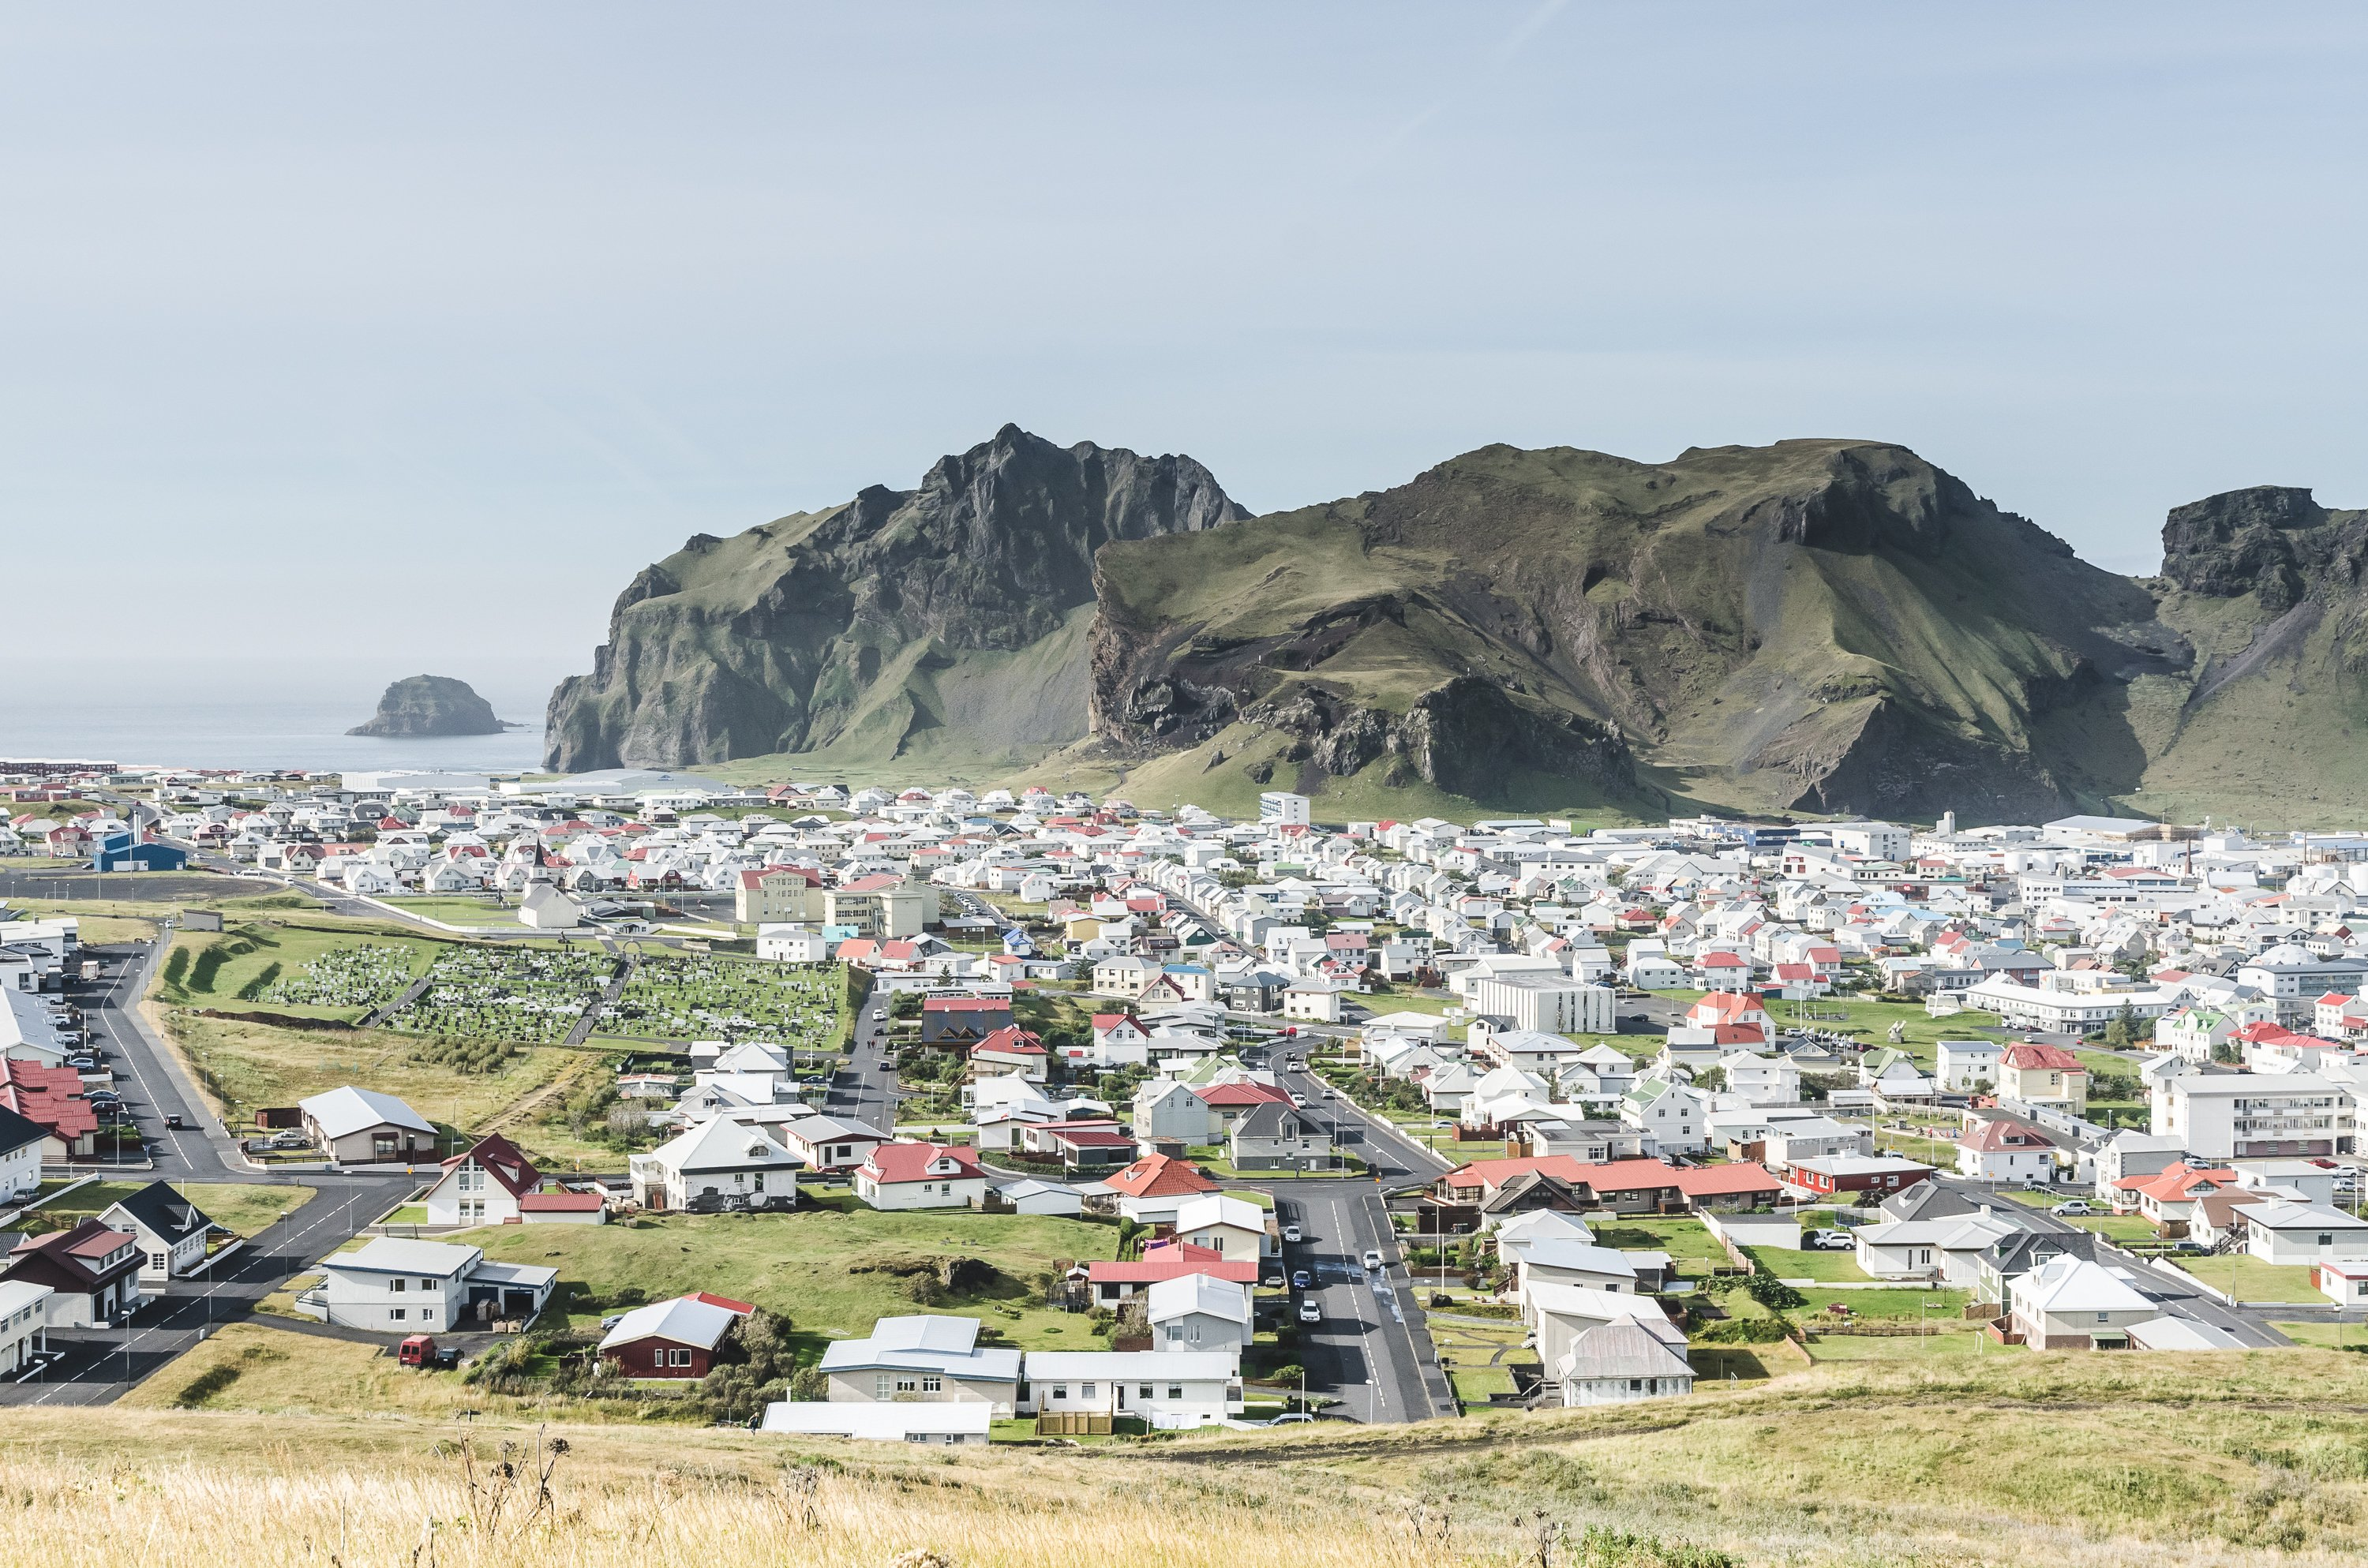 Iceland's Westman Islands could become home to new whale sanctuary